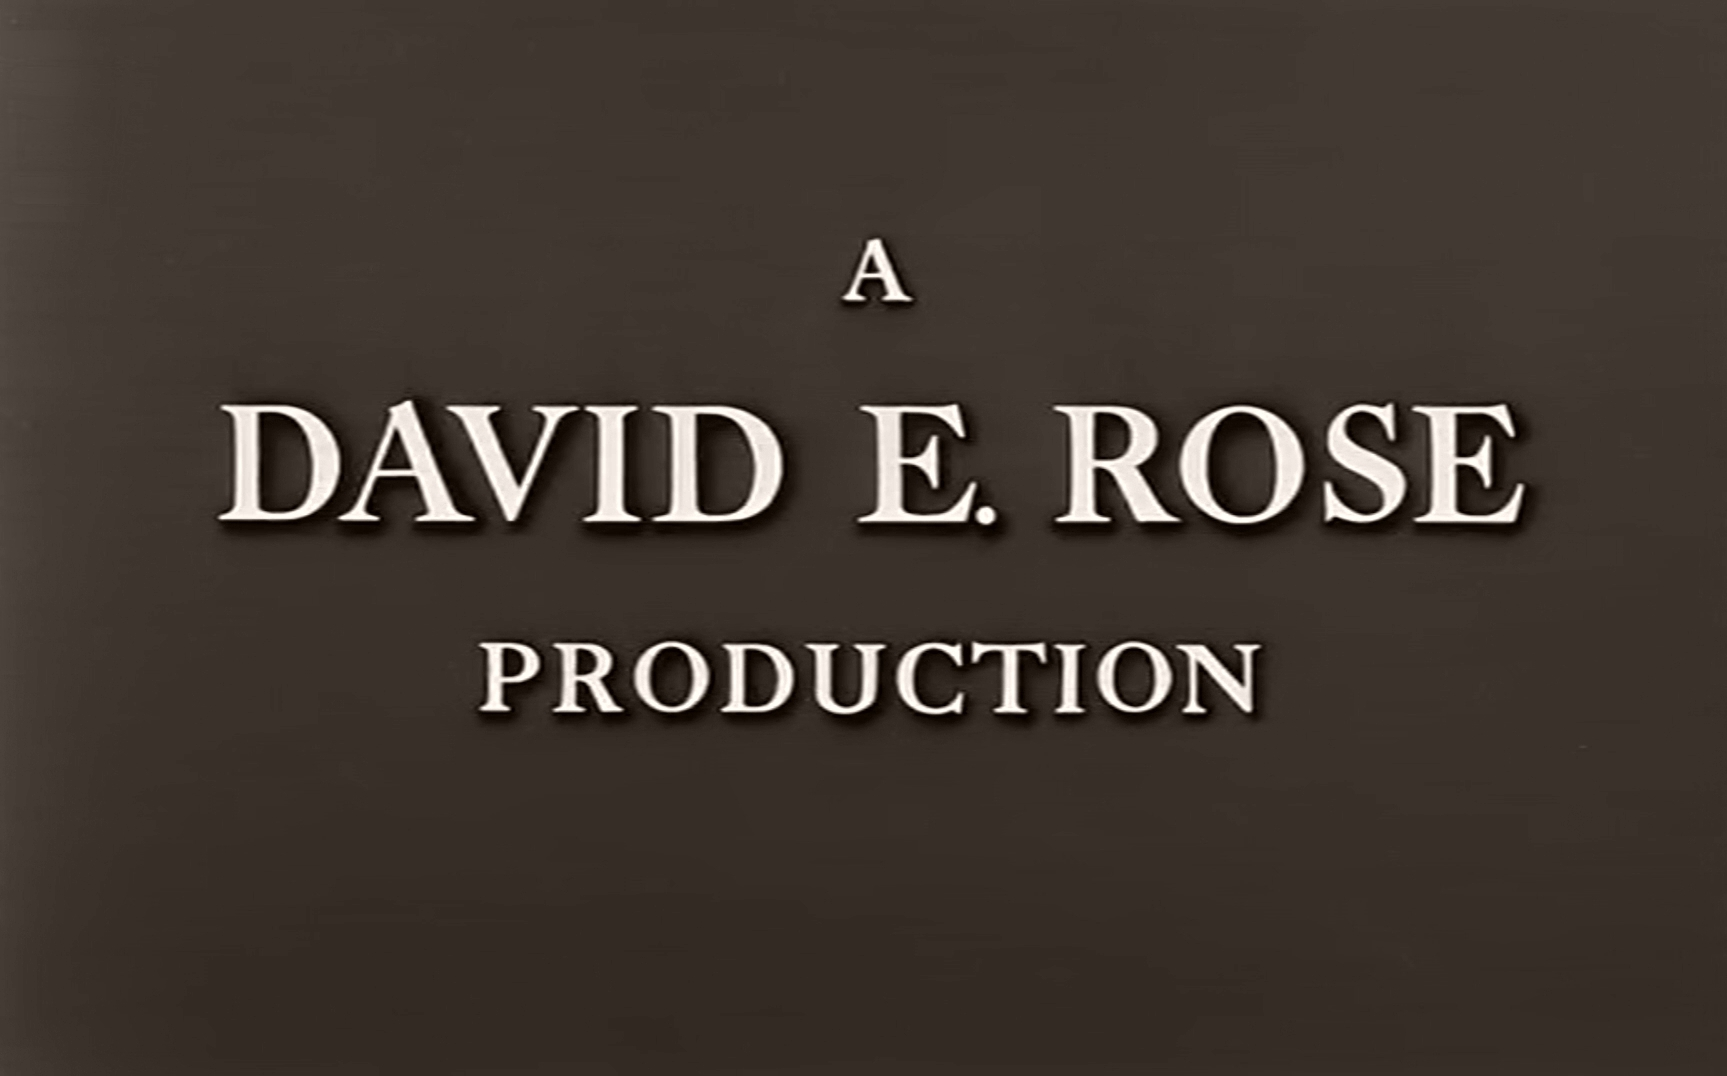 Main title from The End of the Affair (1955) (1). A David E Rose production